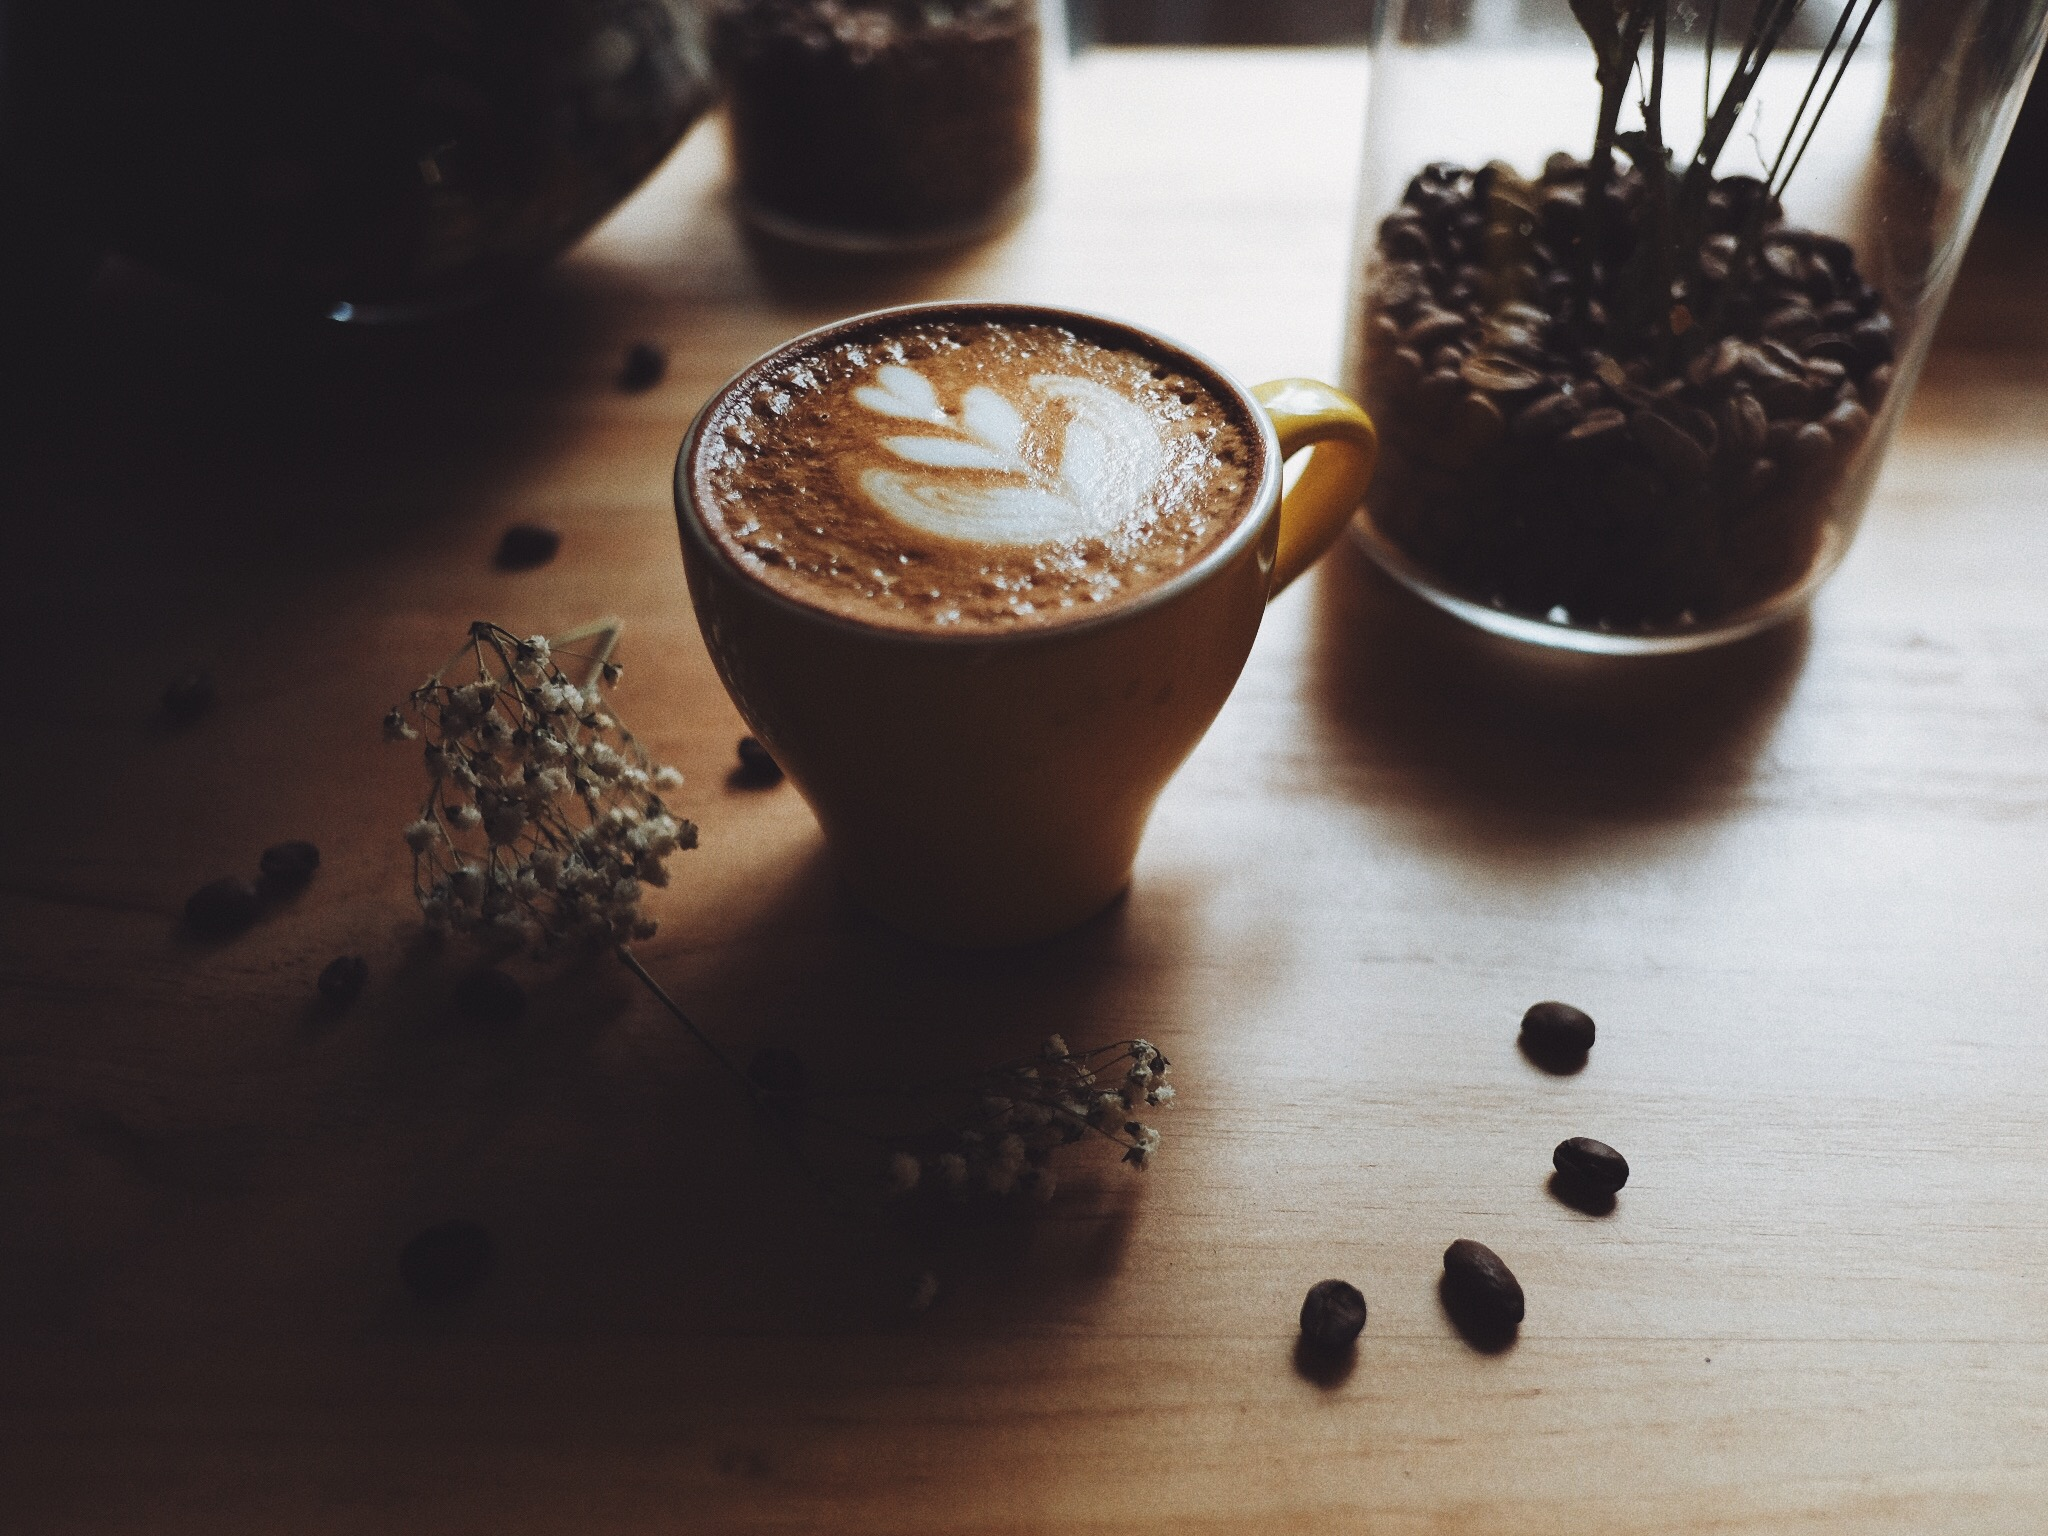 ? - COFFEE QUESTION